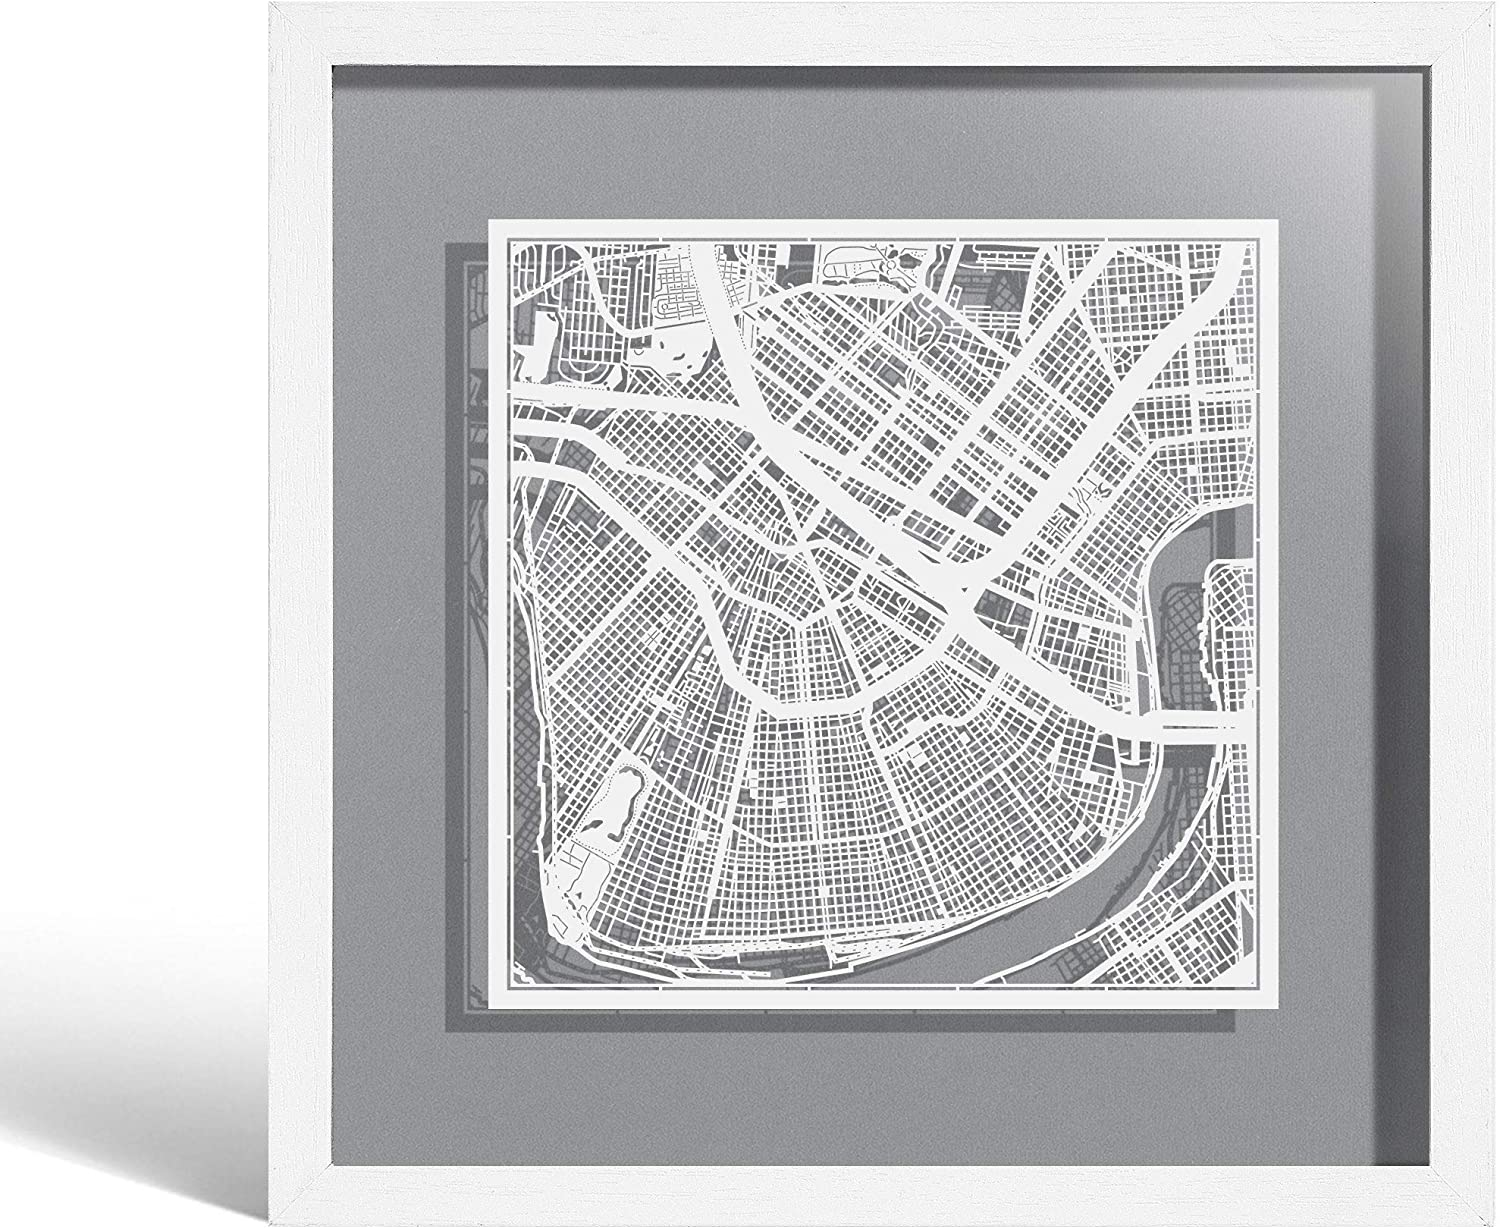 O3 Design Studio New Orleans Paper Cut Map Framed, White map, White Frame, 9x9 inches, Gift Boxed, 4 Background Color, self-Changing, Paper Art